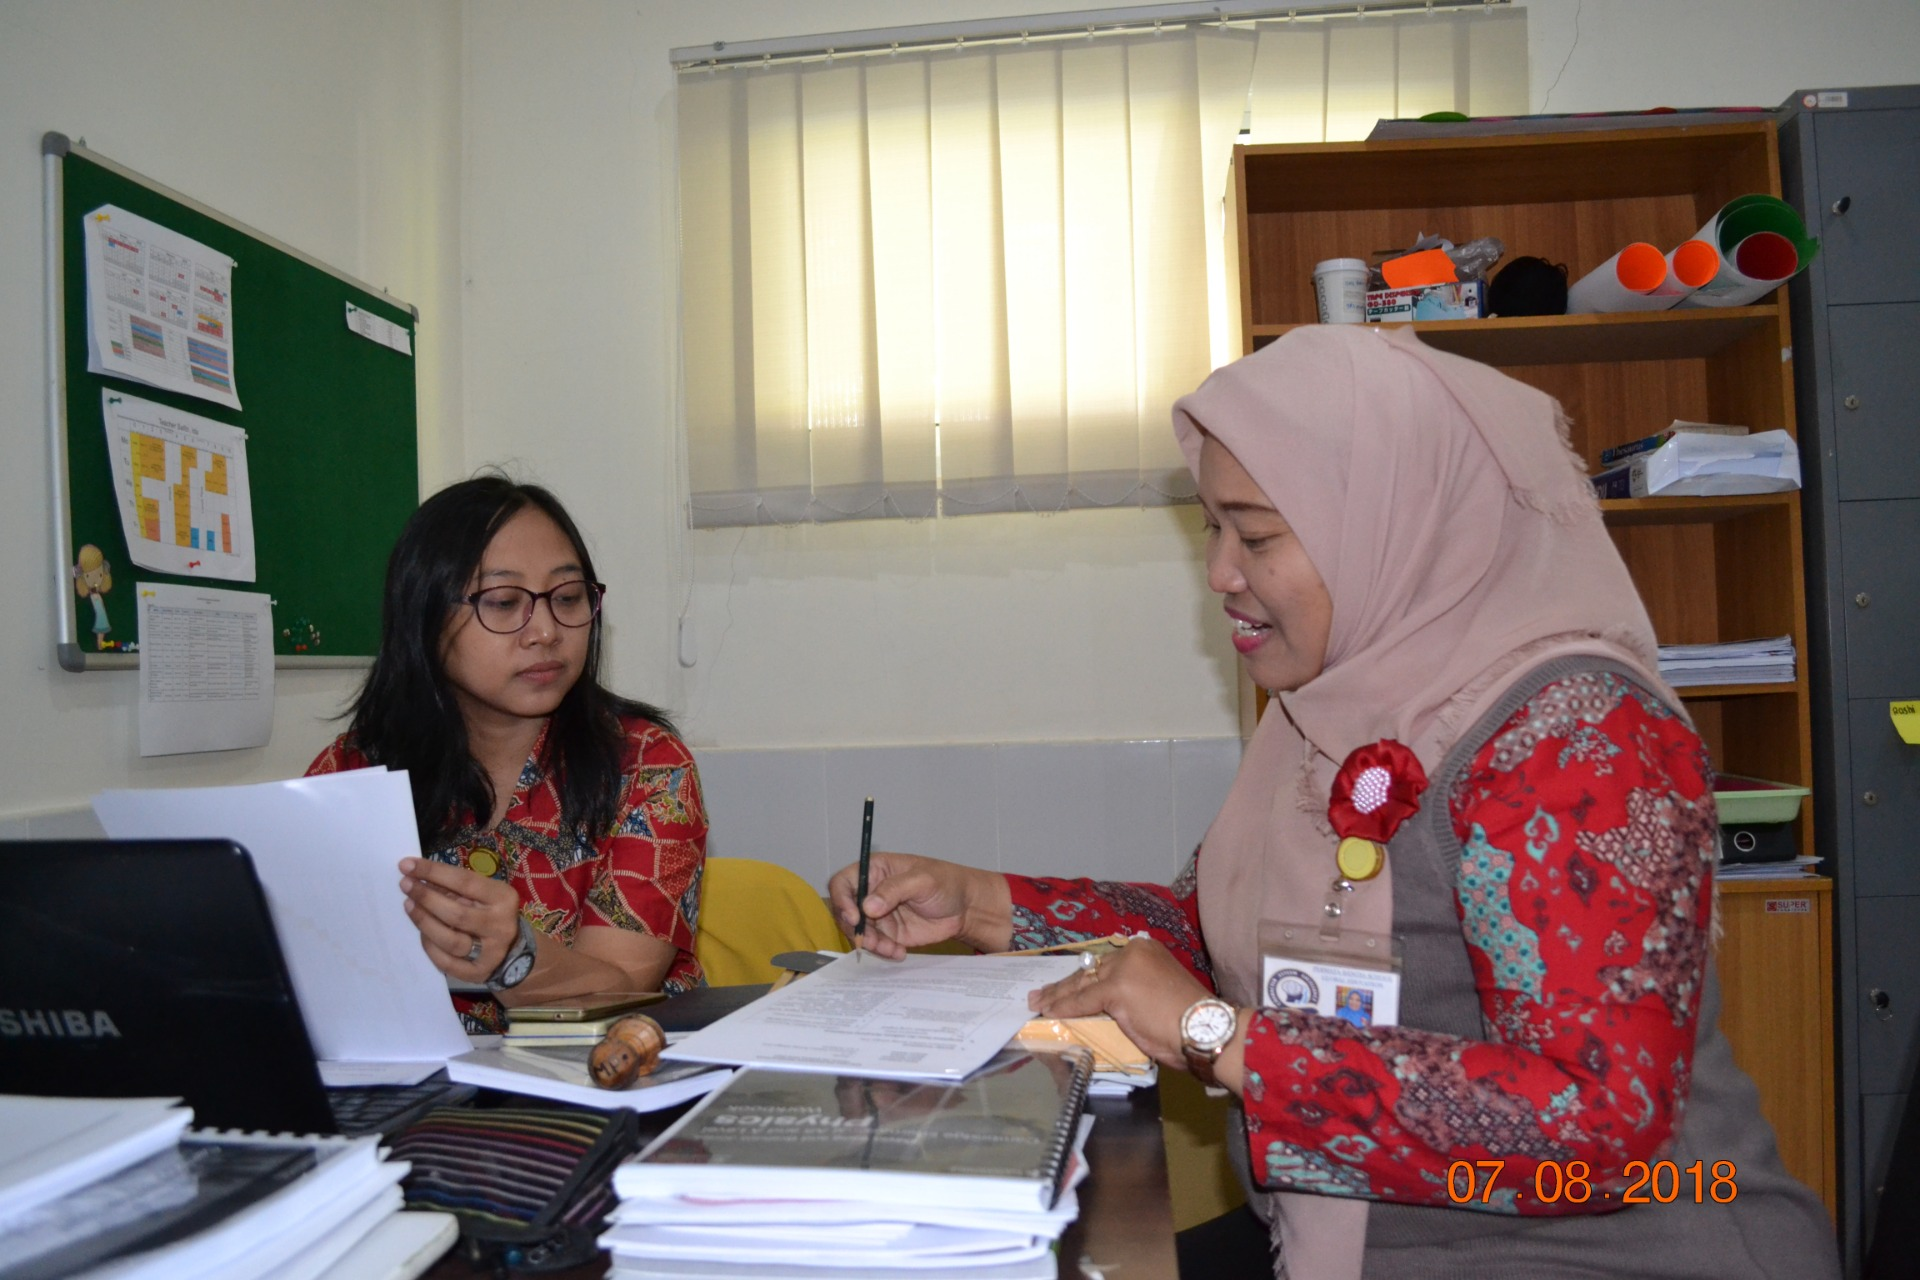 PBI Welcomes Accreditation Teams for SMP & SMA - Image 6